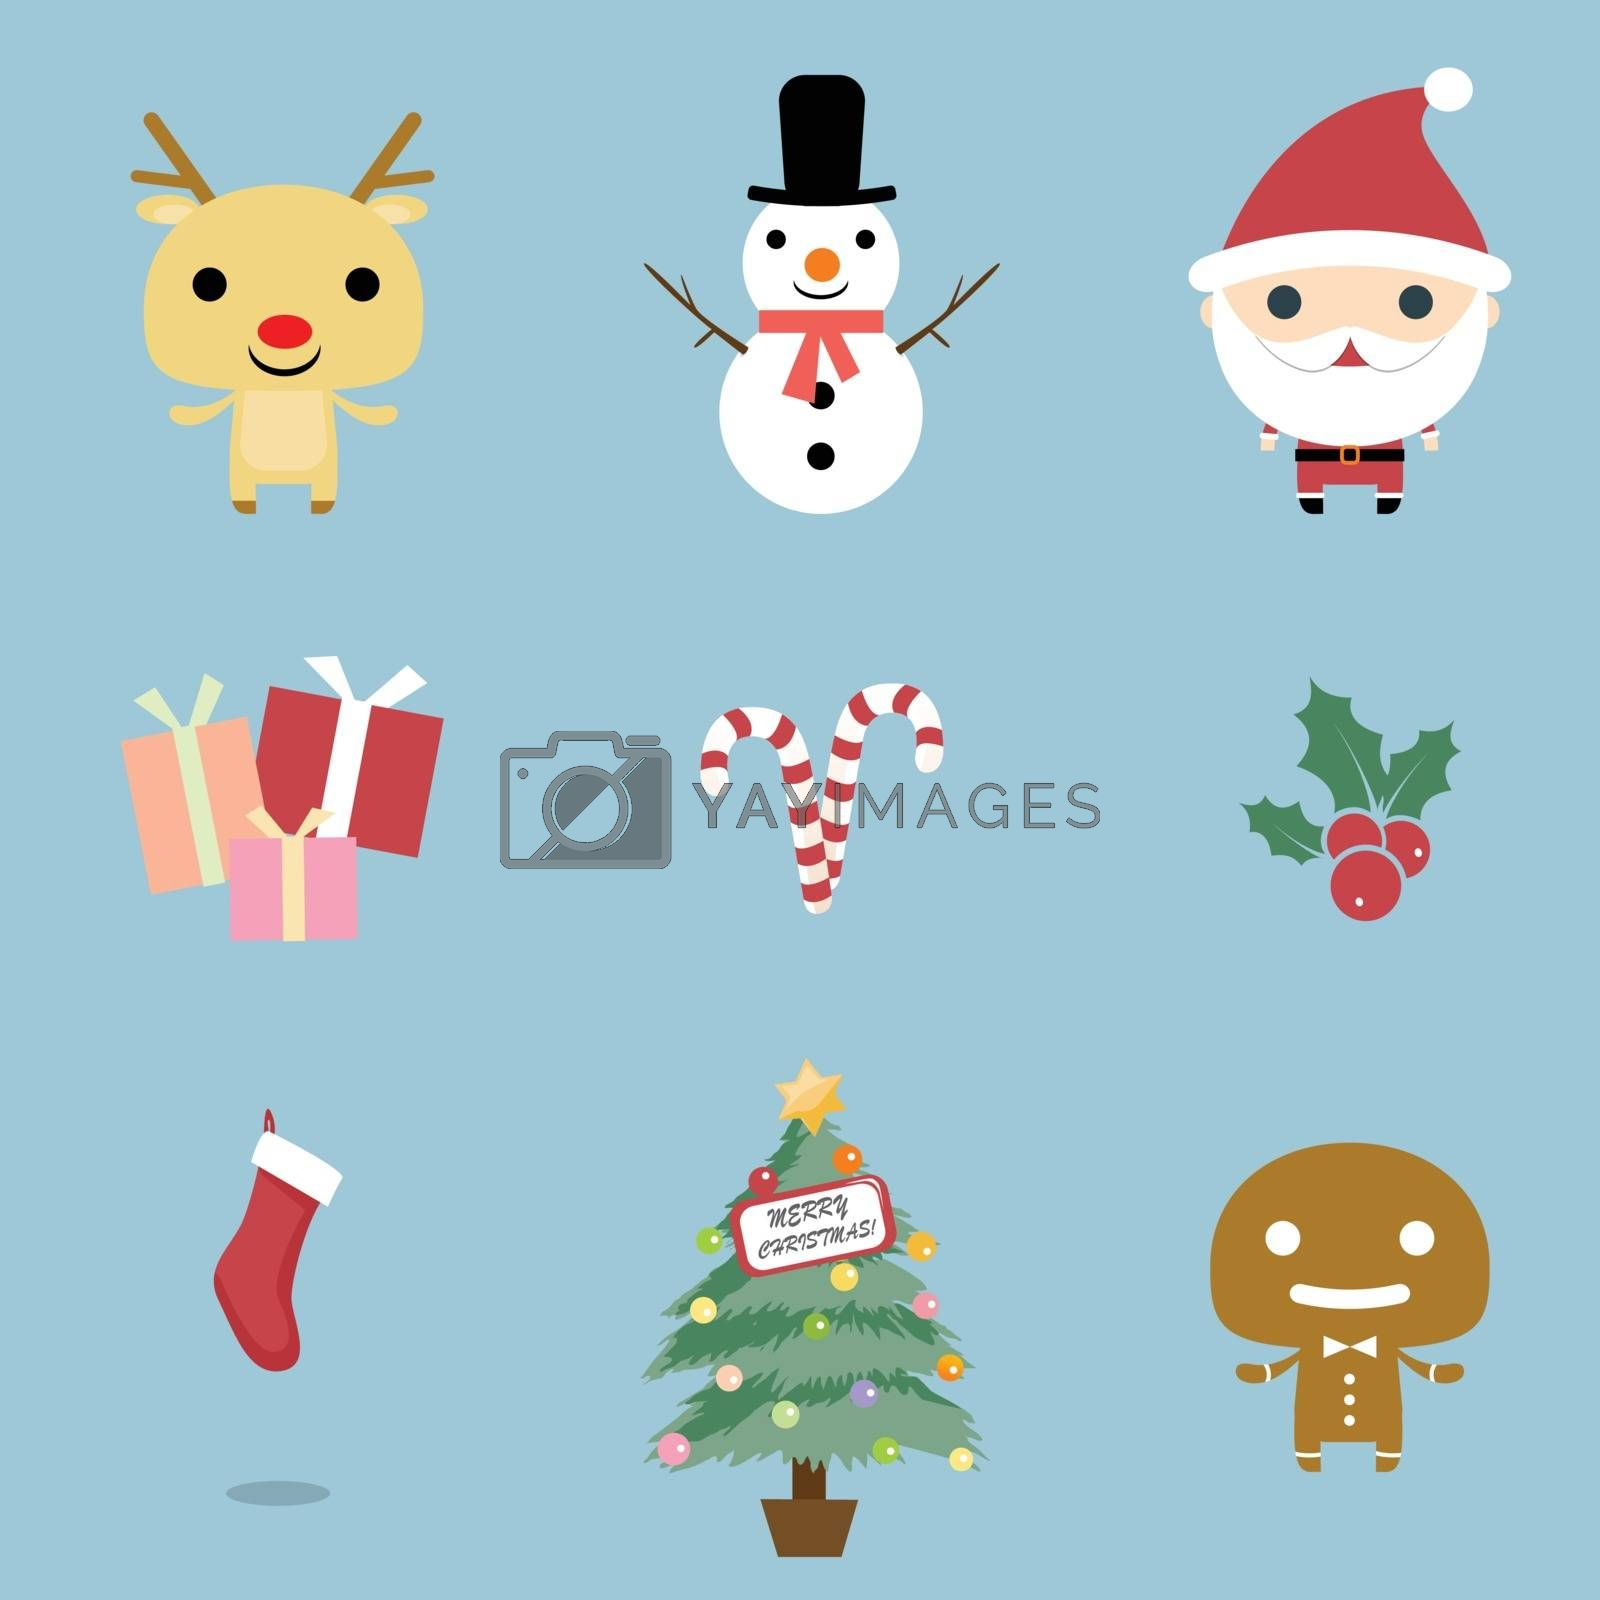 Christmas and Winter icons collection. Christmas Icons set, vector. Christmas icons, elements and illustrations. Christmas Icons/Objects Collection. Detailed vector illustration.